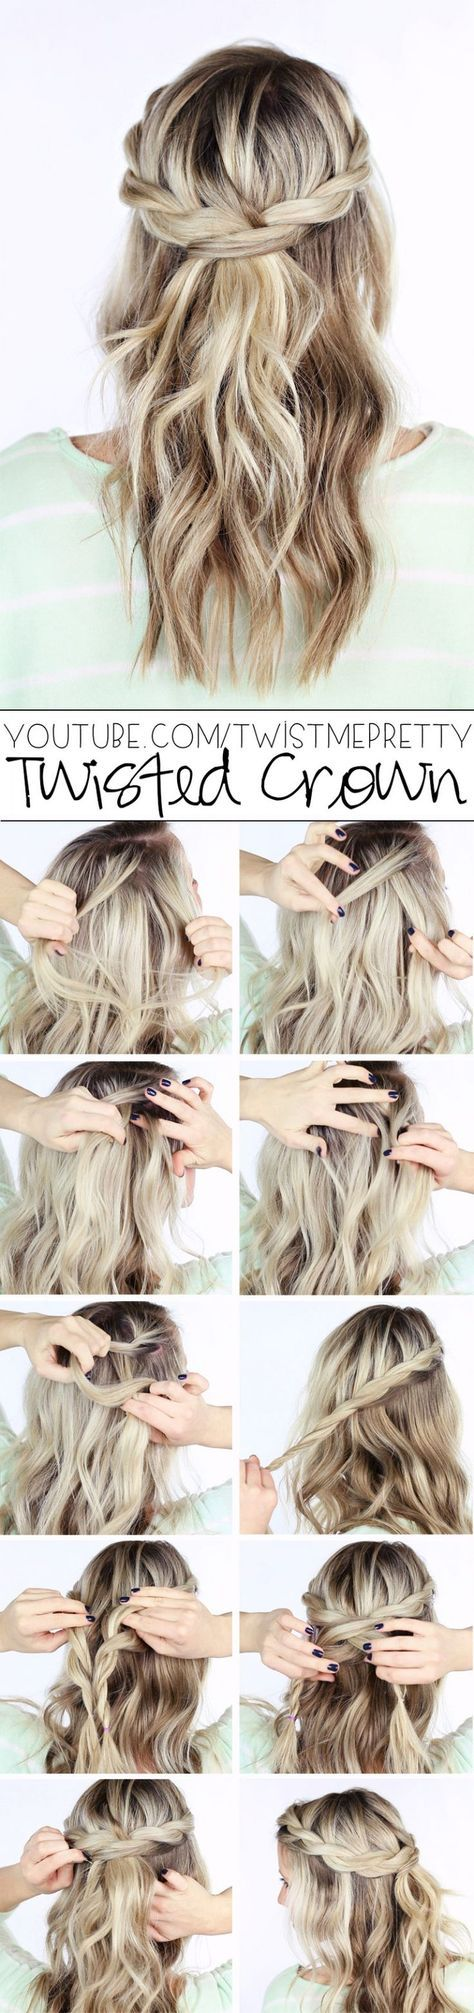 easy and cute hair tutorials for any occassion hairnails